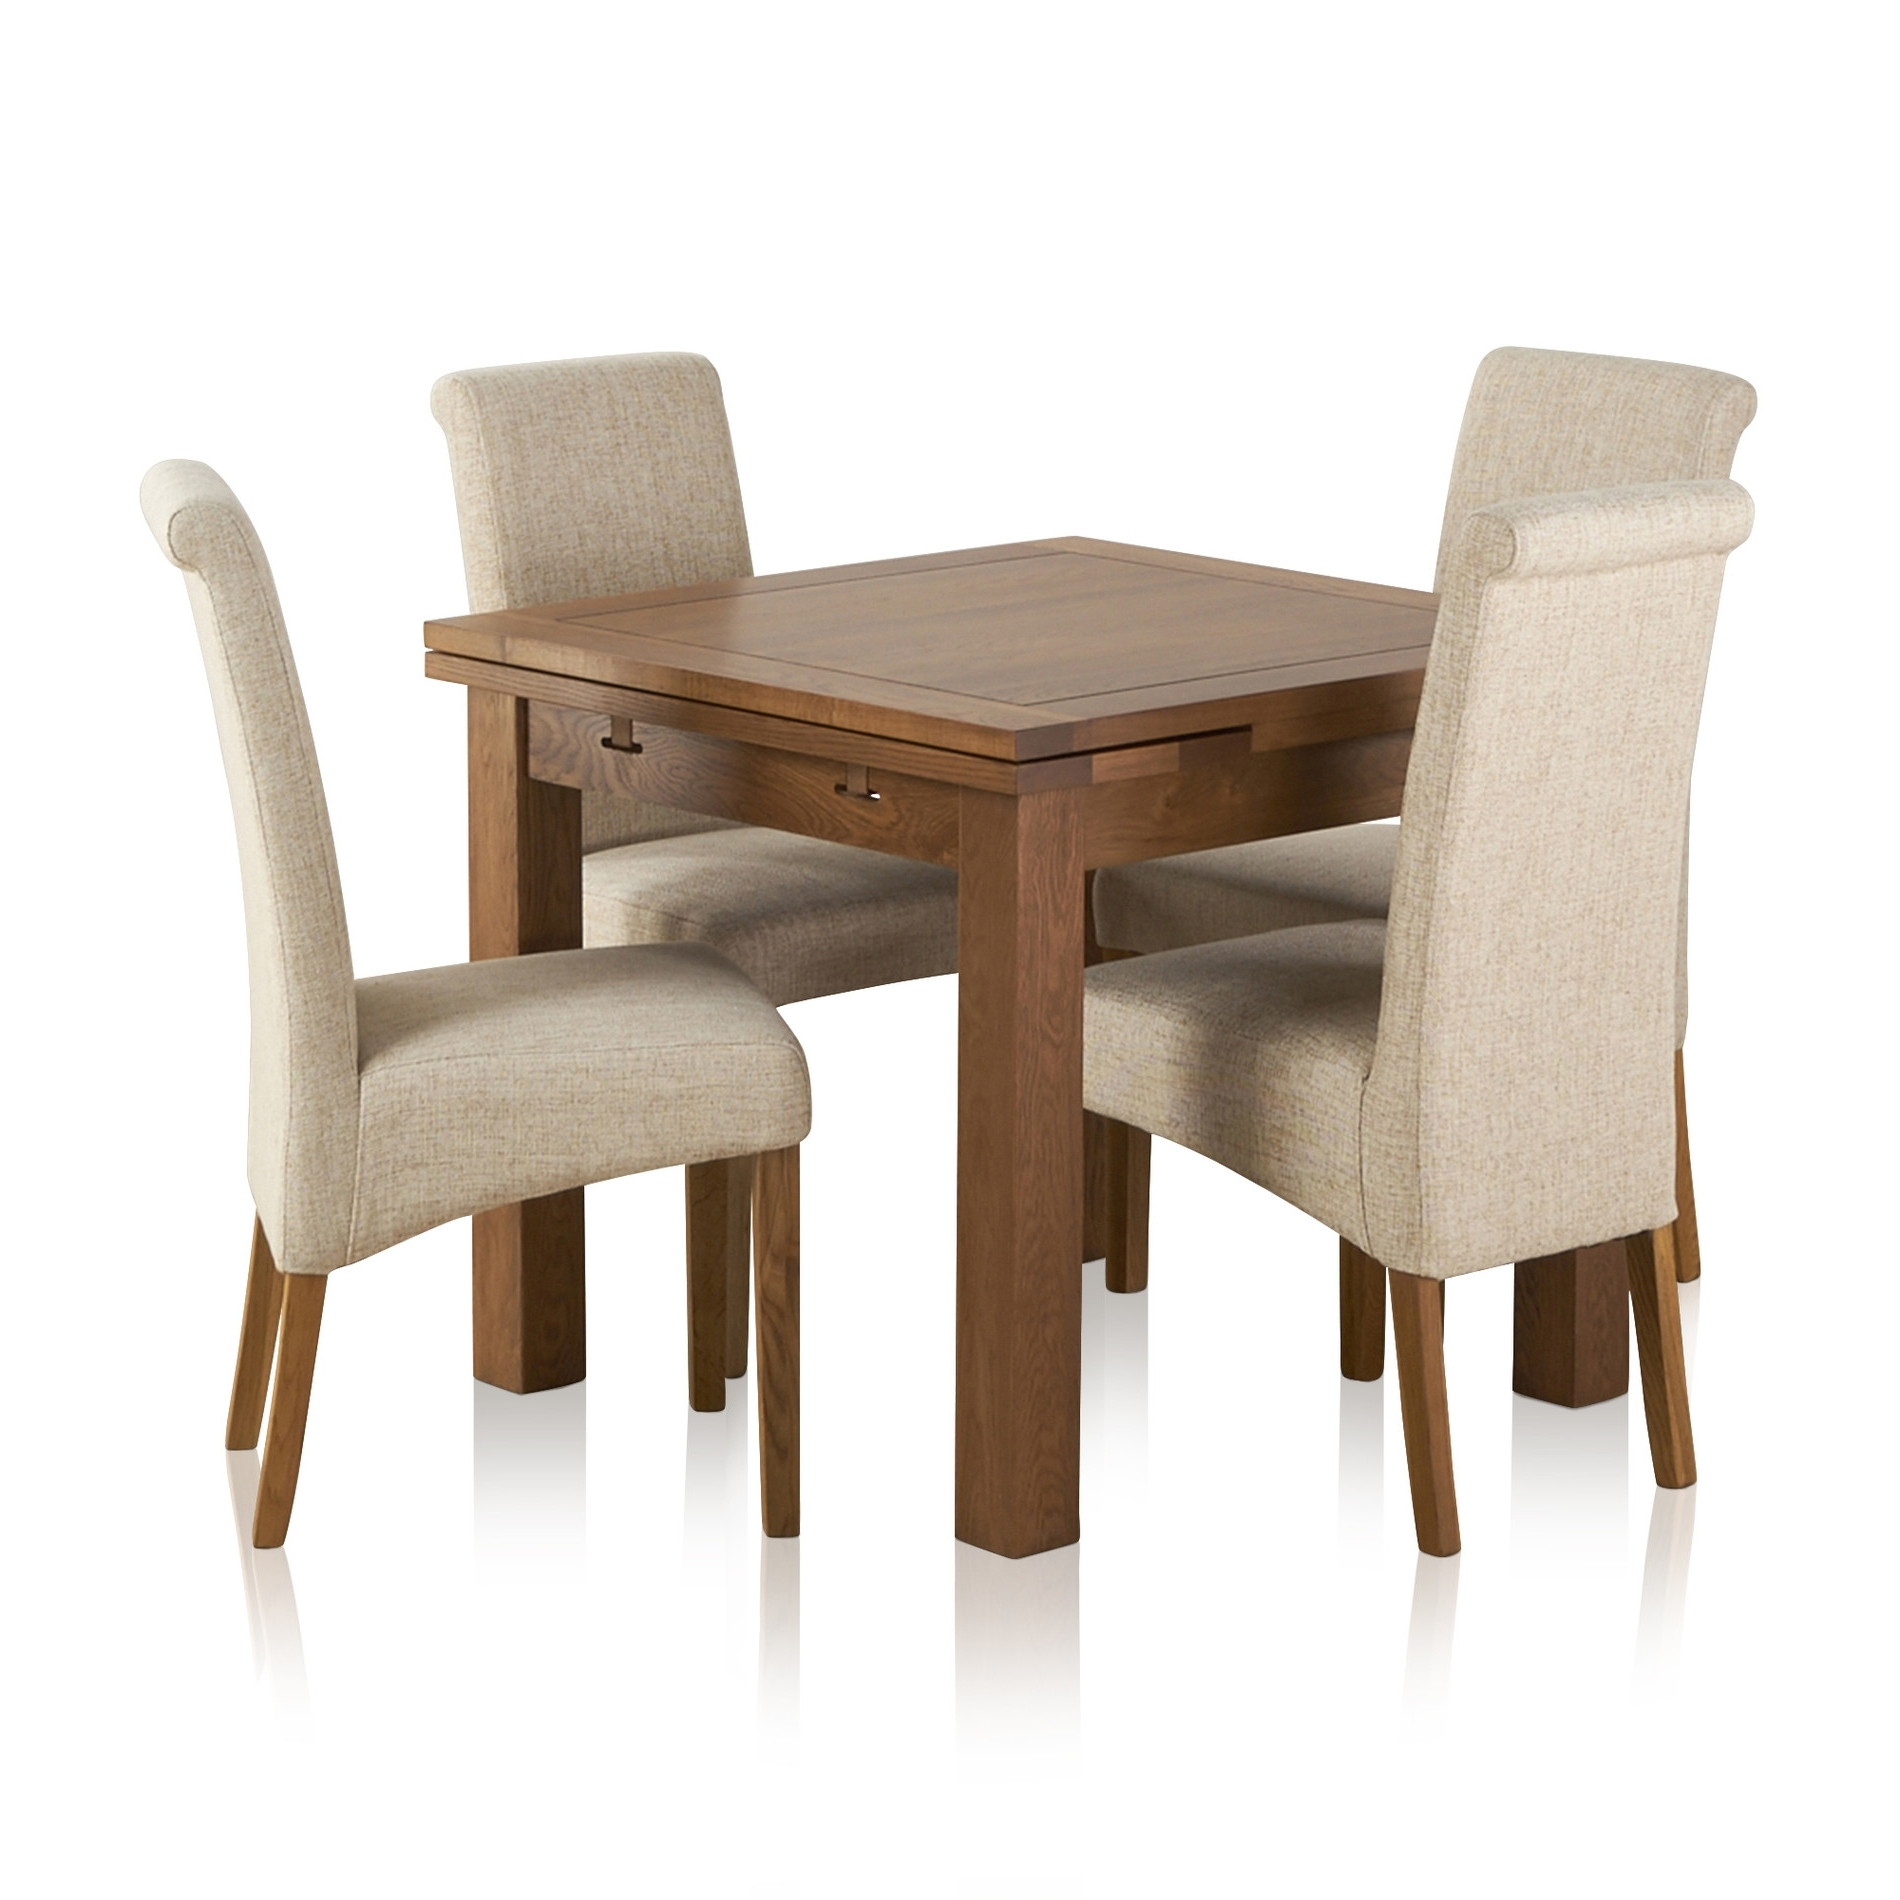 Extending Dining Table In Rustic Oak With 4 Beige Fabric Chairs Regarding Latest Dining Tables And Fabric Chairs (Gallery 17 of 25)